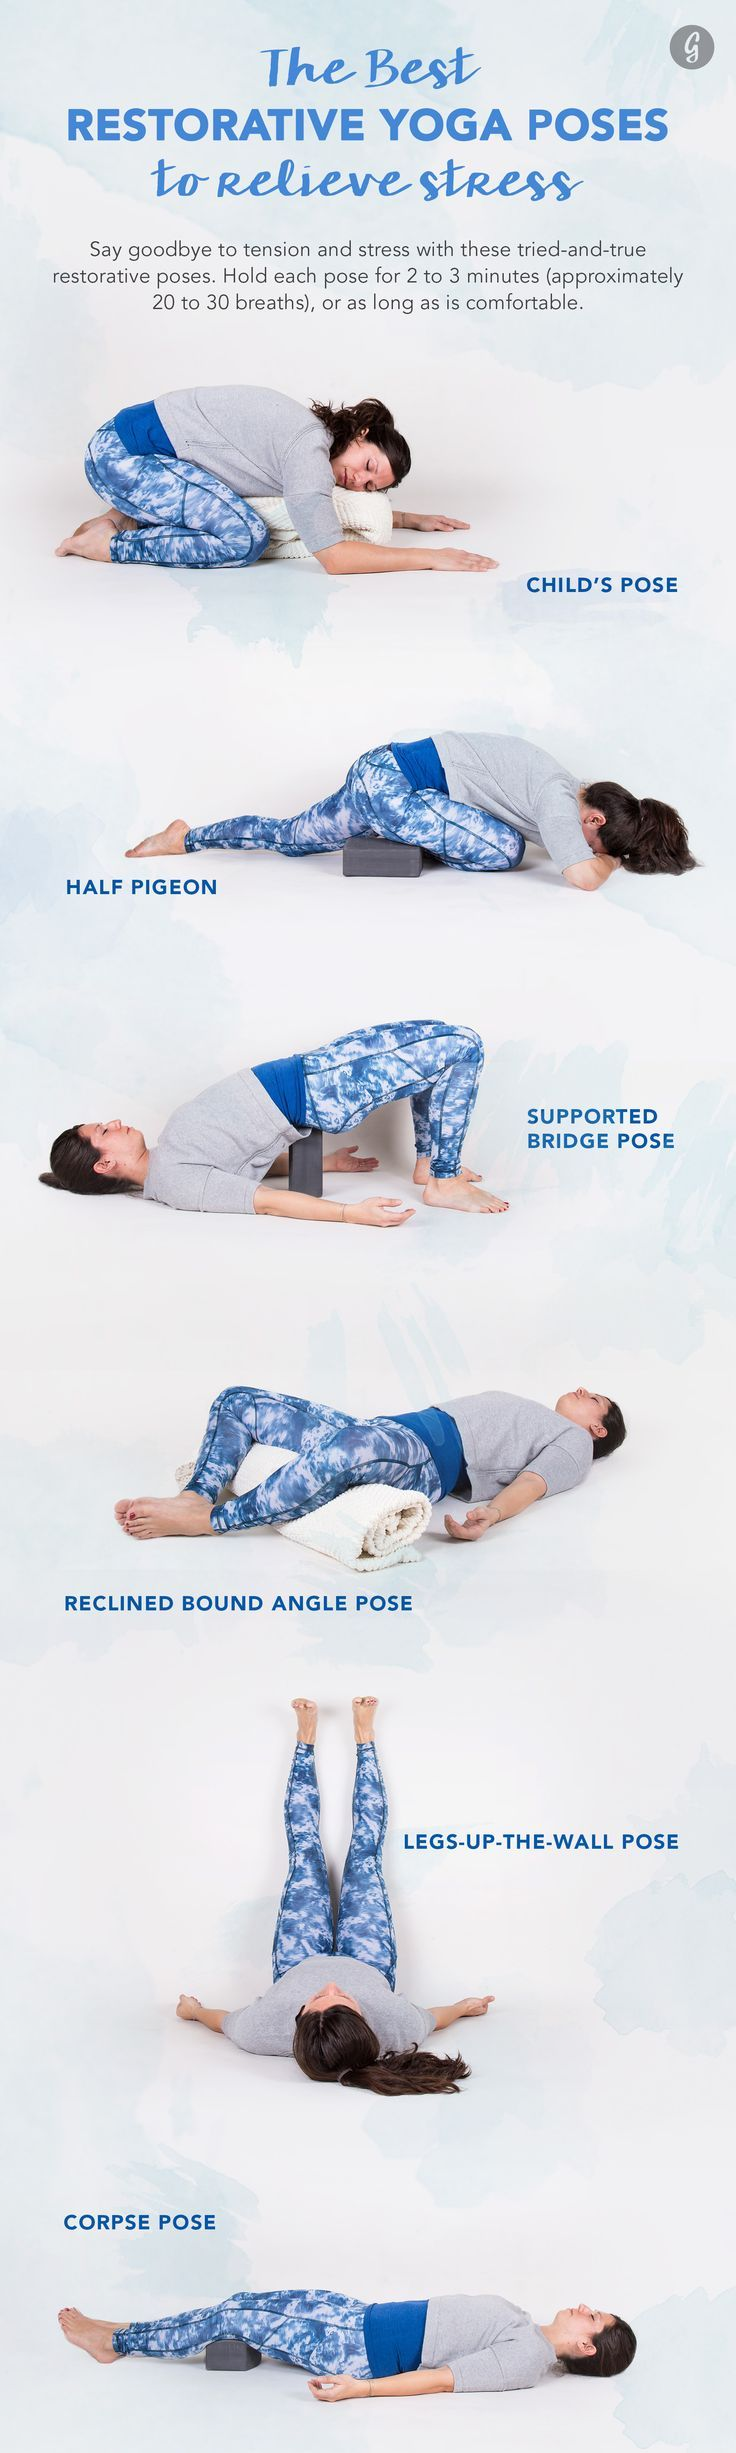 The Best Restorative Yoga Poses